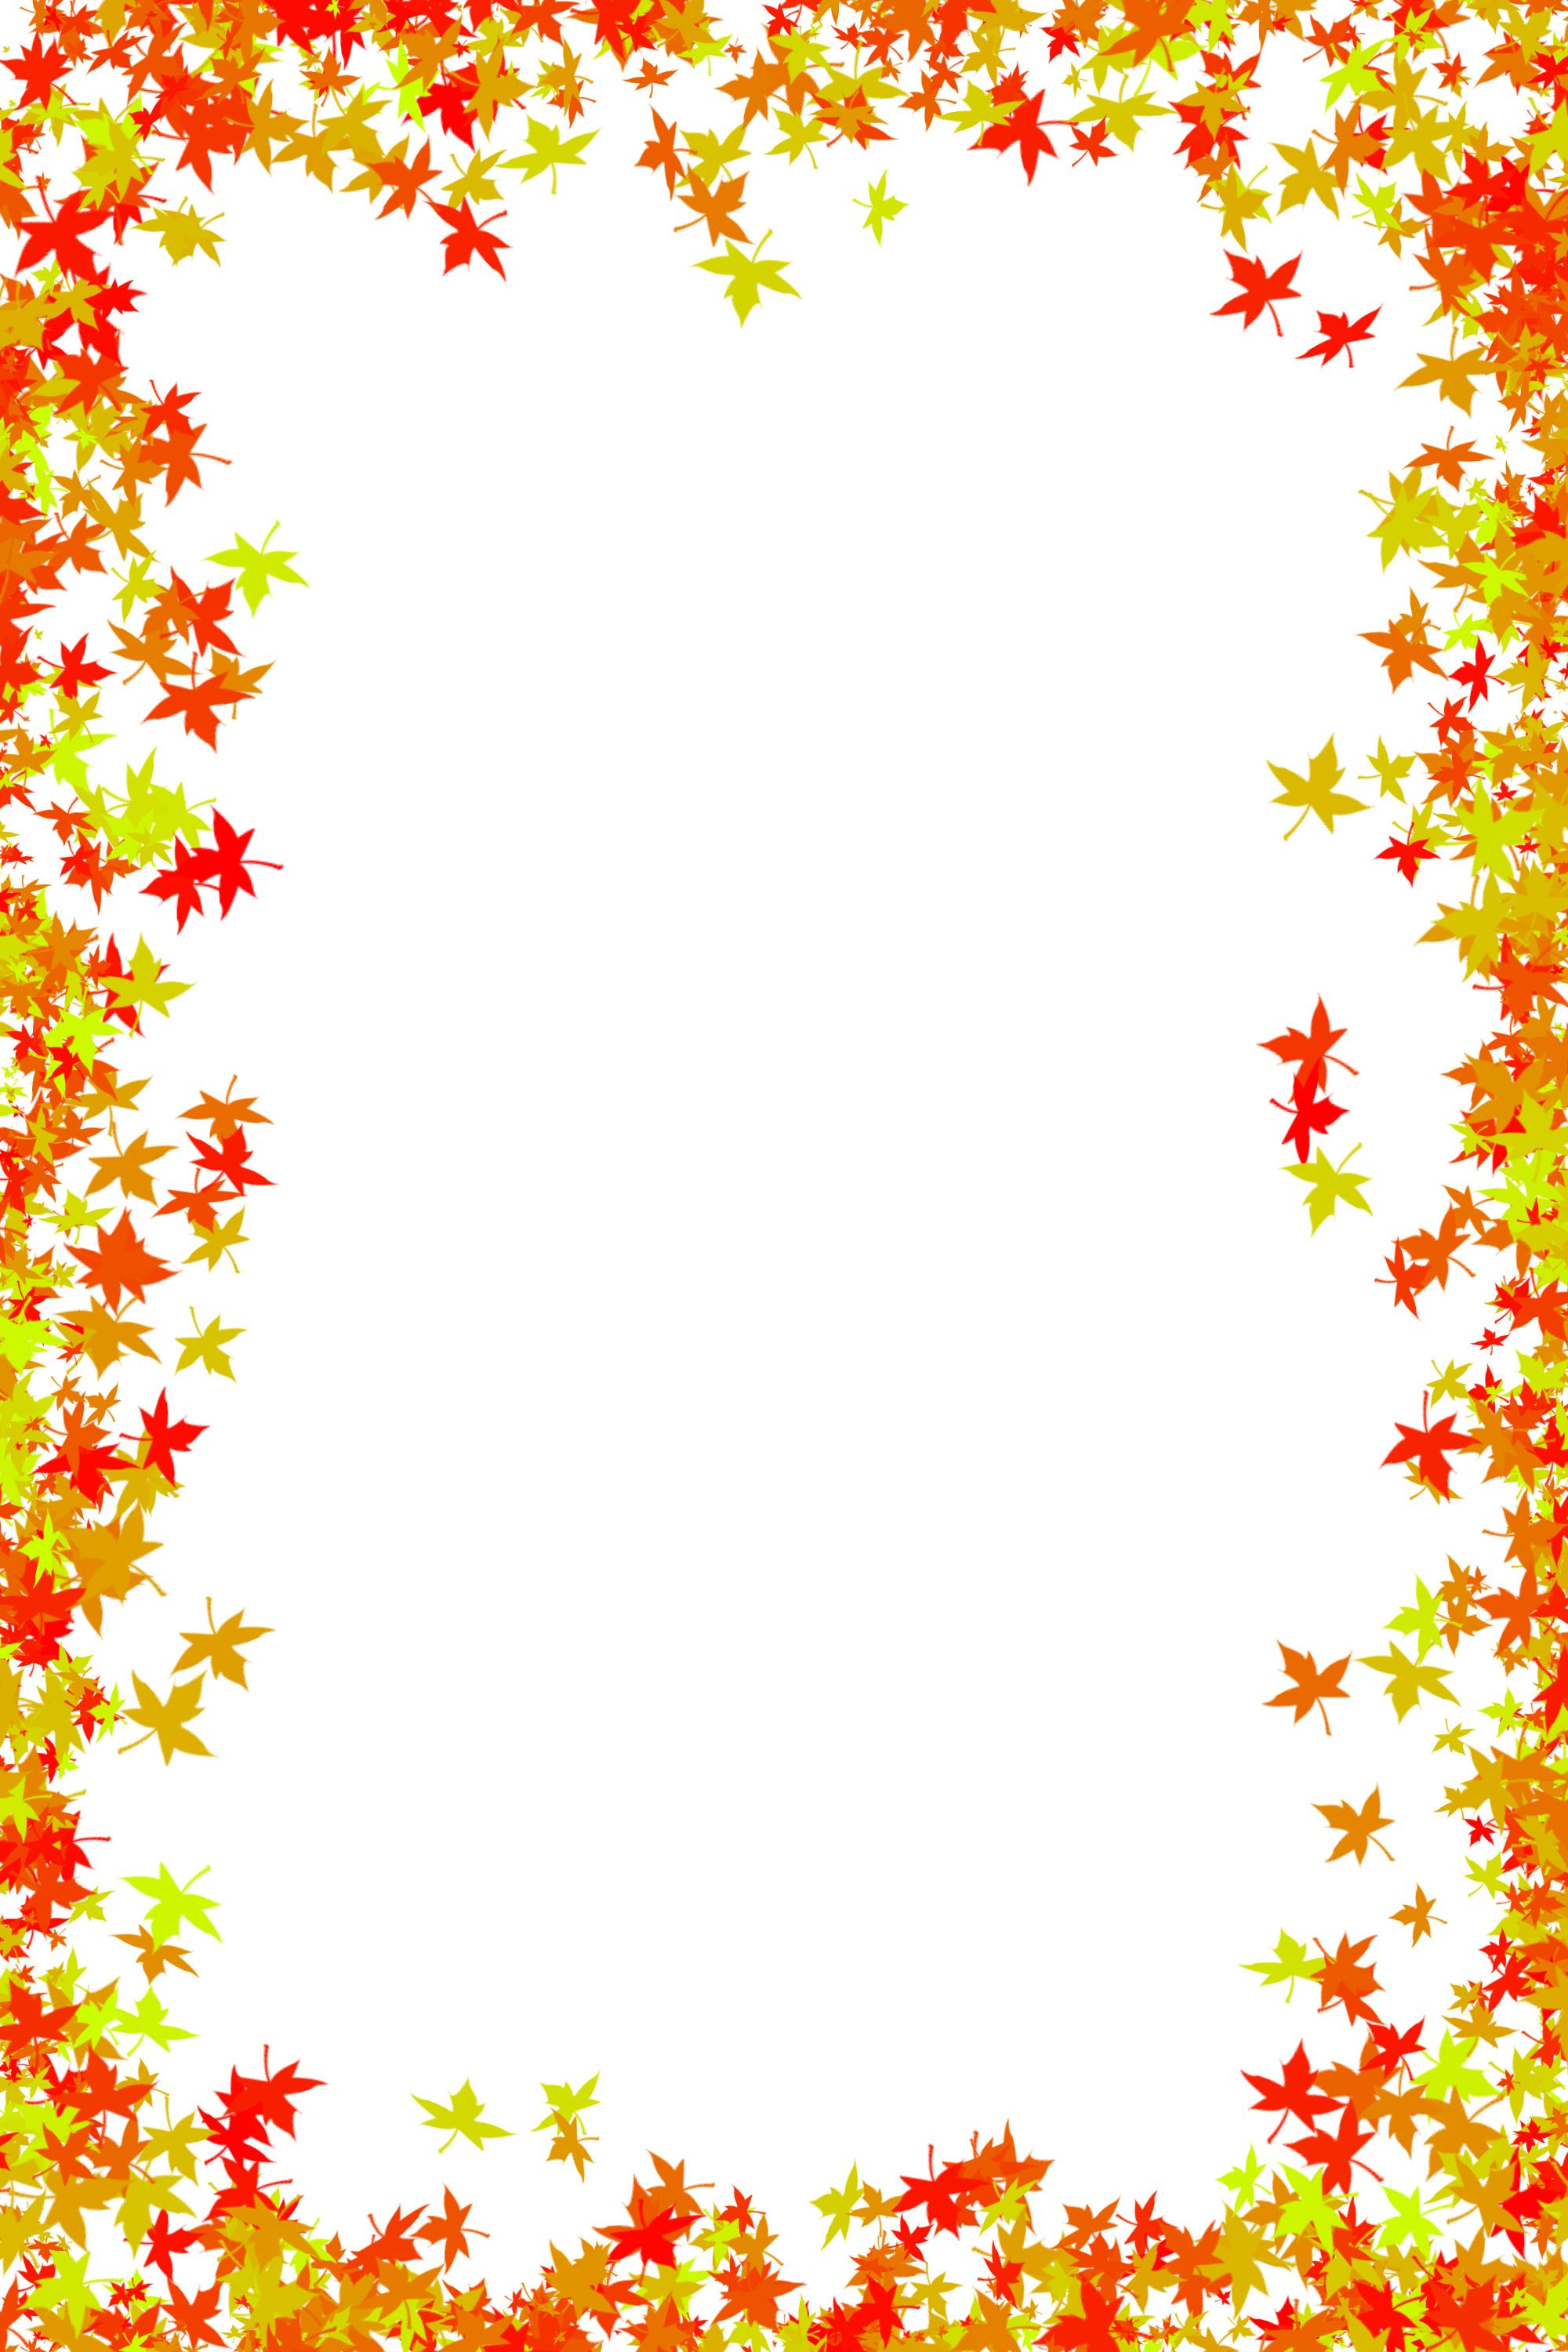 Fall Foliage Border Free | download photo frame of maple leaves in red and…